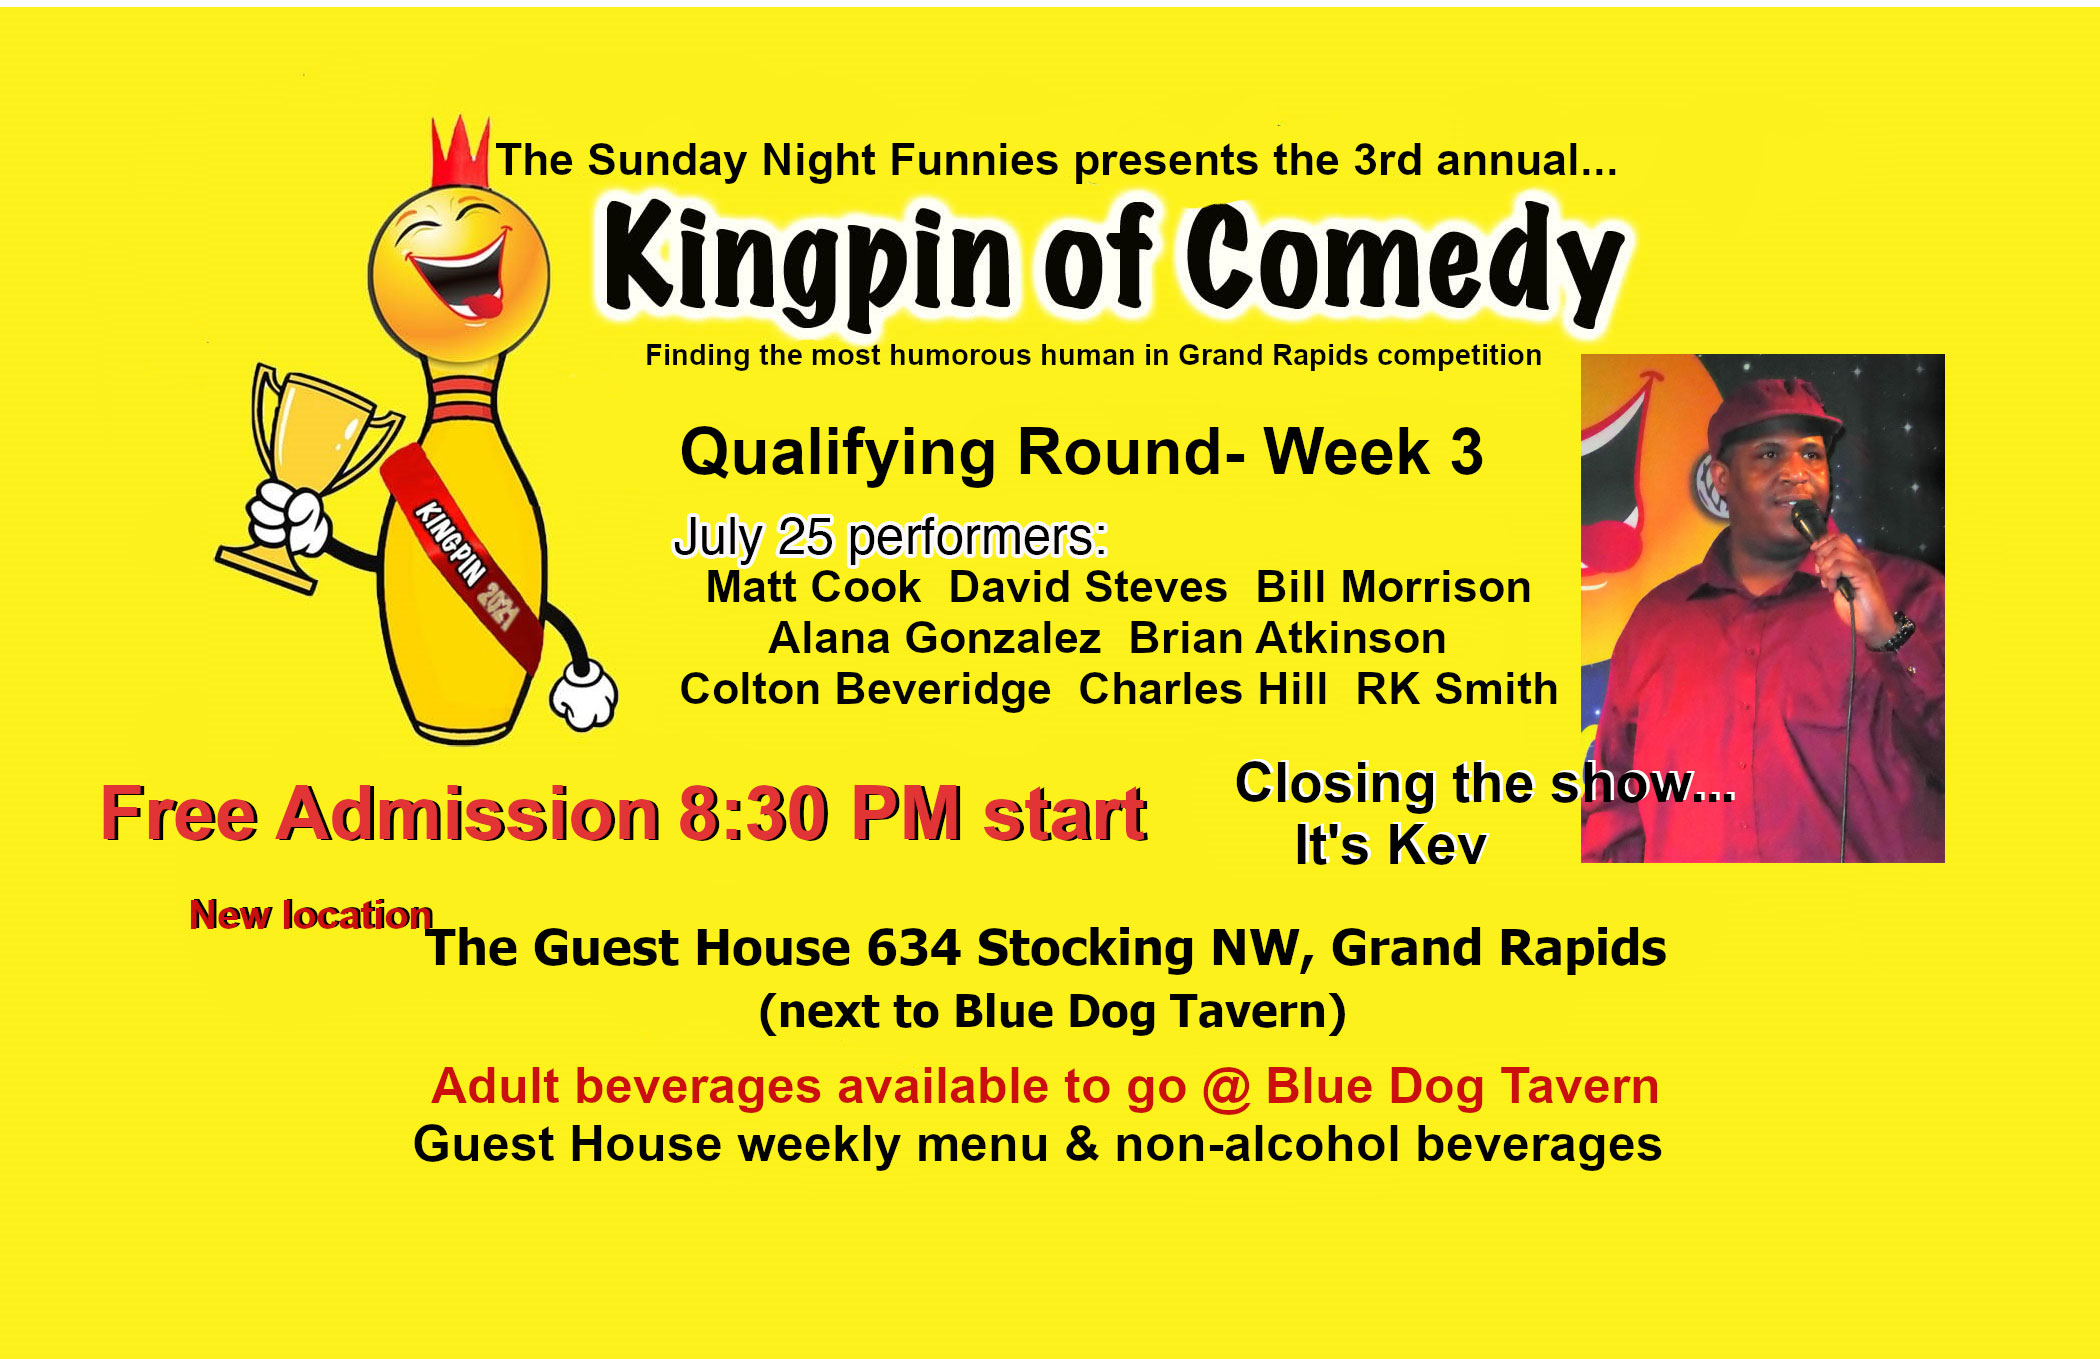 Brian Atkinson performs at the Sunday Night Funnies Kingpin of Comedy